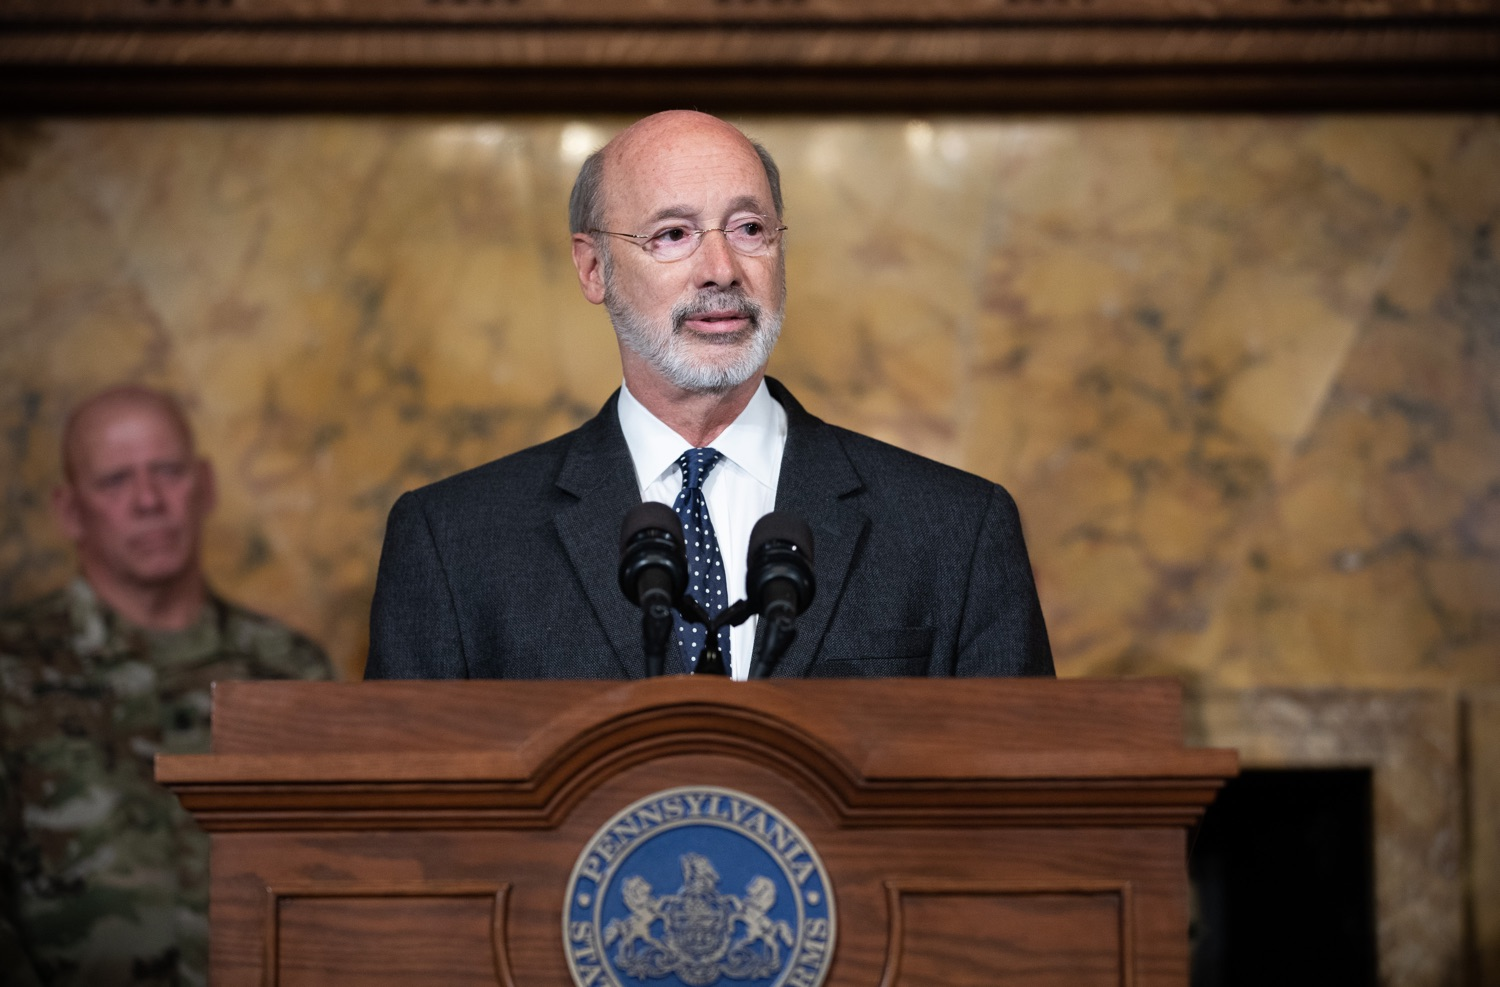 "<a href=""http://filesource.abacast.com/commonwealthofpa/photo/17423_gov_trip_recap_dz_010.jpg"" target=""_blank"">⇣ Download Photo<br></a>Harrisburg, PA  Governor Tom Wolf speaking about his recent visit to Lithuania and Poland.  Governor Tom Wolf today highlighted the second half of his trip abroad, including visiting with more than 500 PA National Guard (PNG) troops in Poland, and honoring the Tree of Life synagogue victims at the Auschwitz-Birkenau Memorial. Tuesday, September 17, 2019"